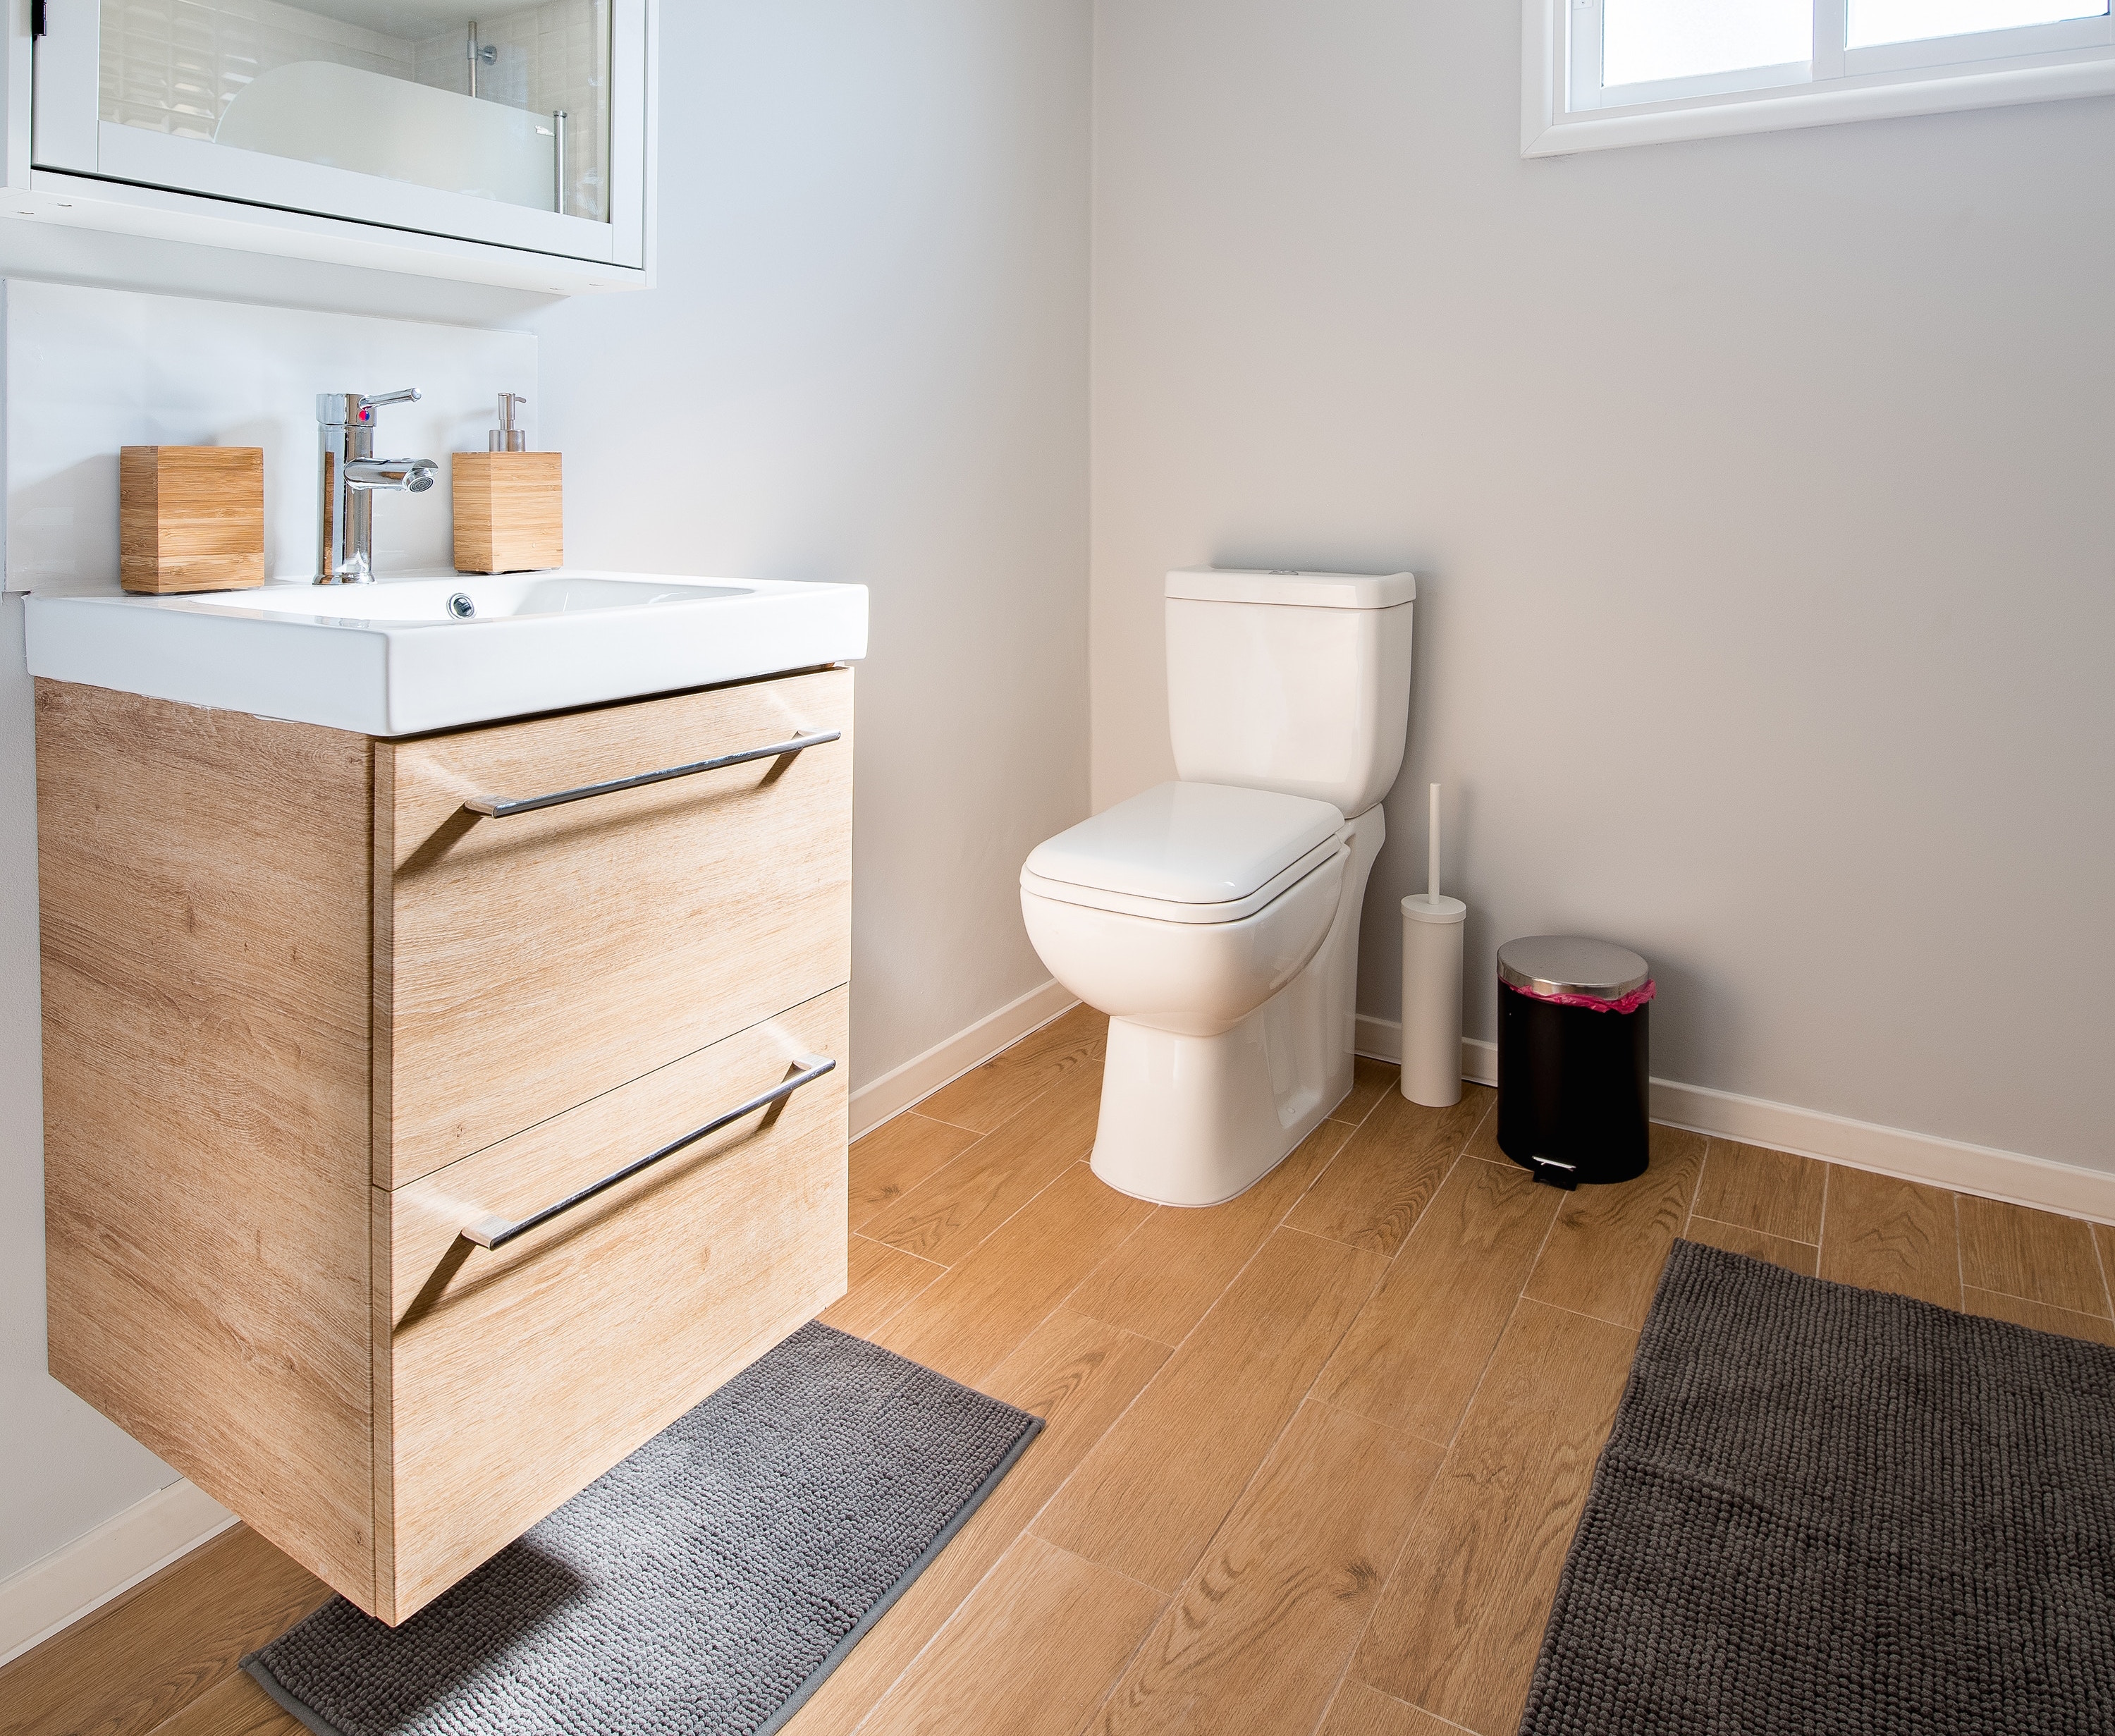 Superb 14 Things You Should Never Flush Down The Toilet Popular Lamtechconsult Wood Chair Design Ideas Lamtechconsultcom